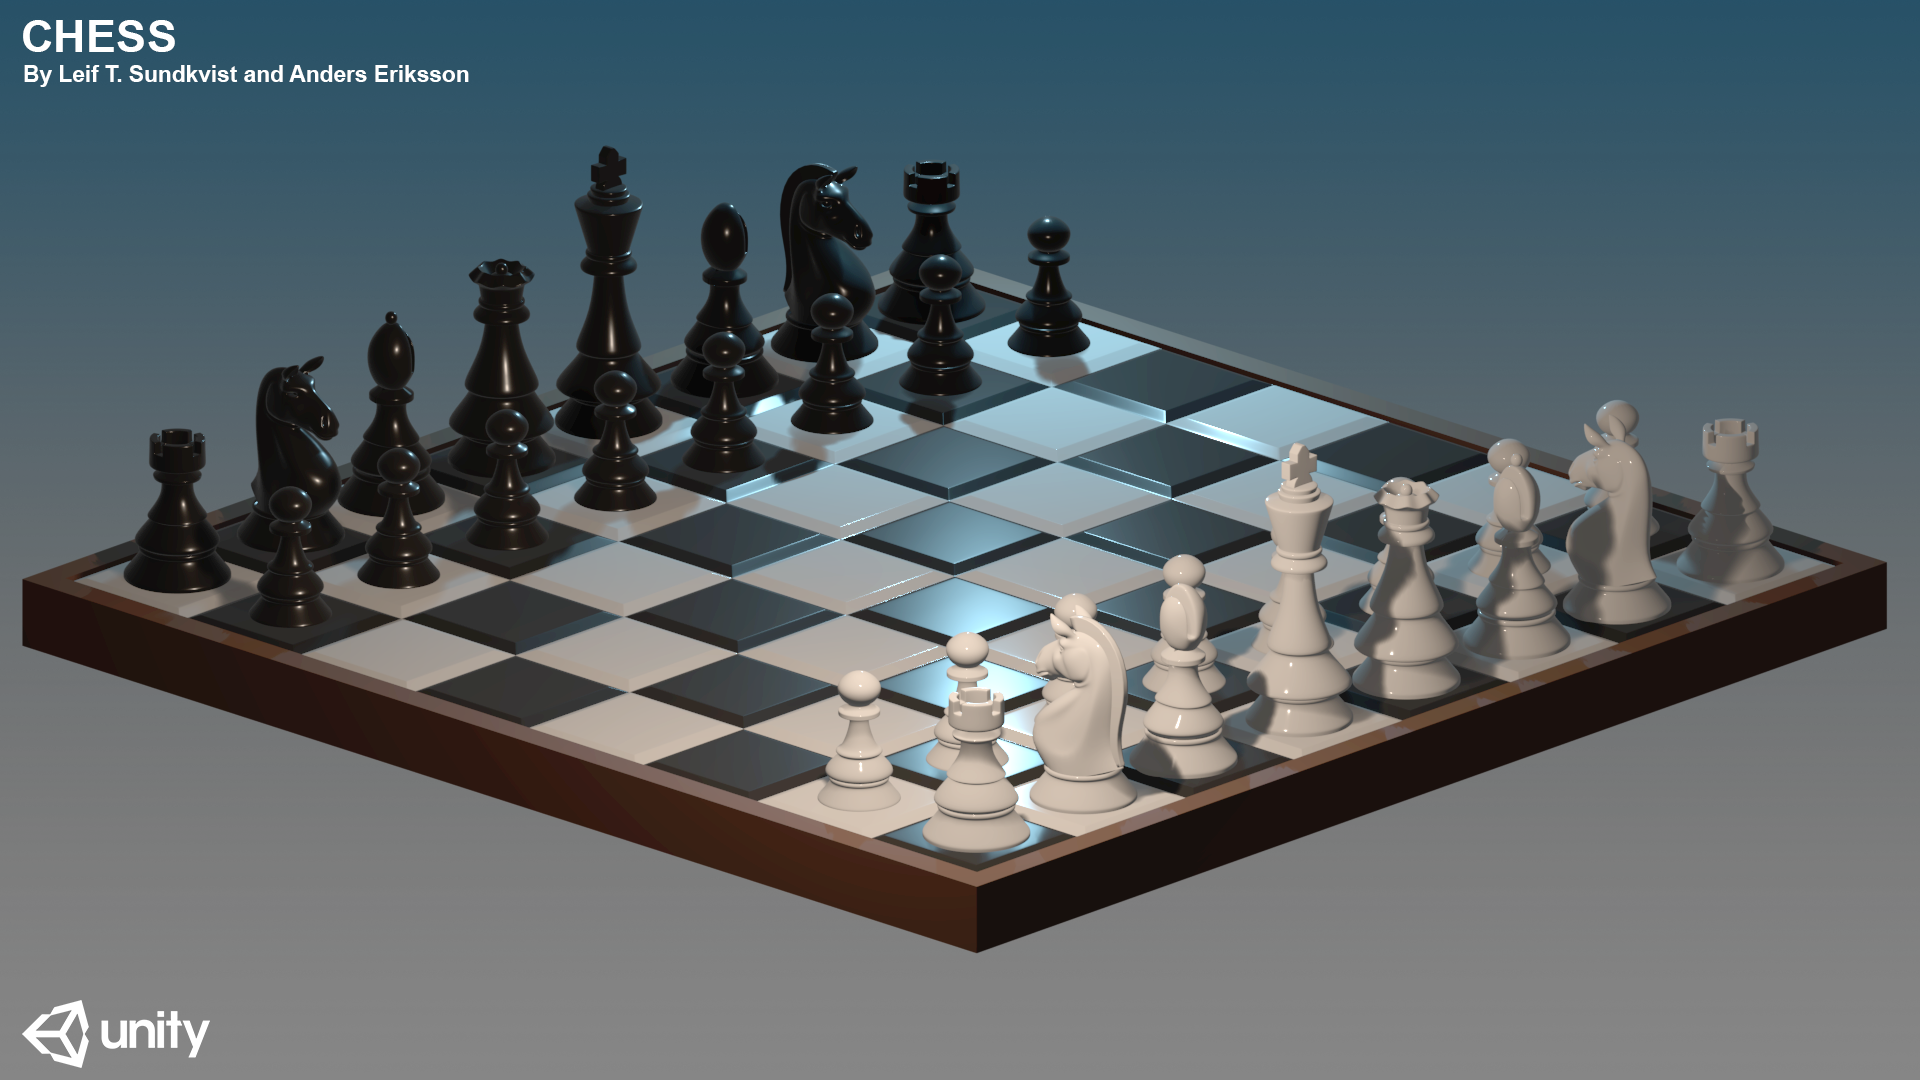 Chess by Anders Eriksson and Leif T. Sundkvist